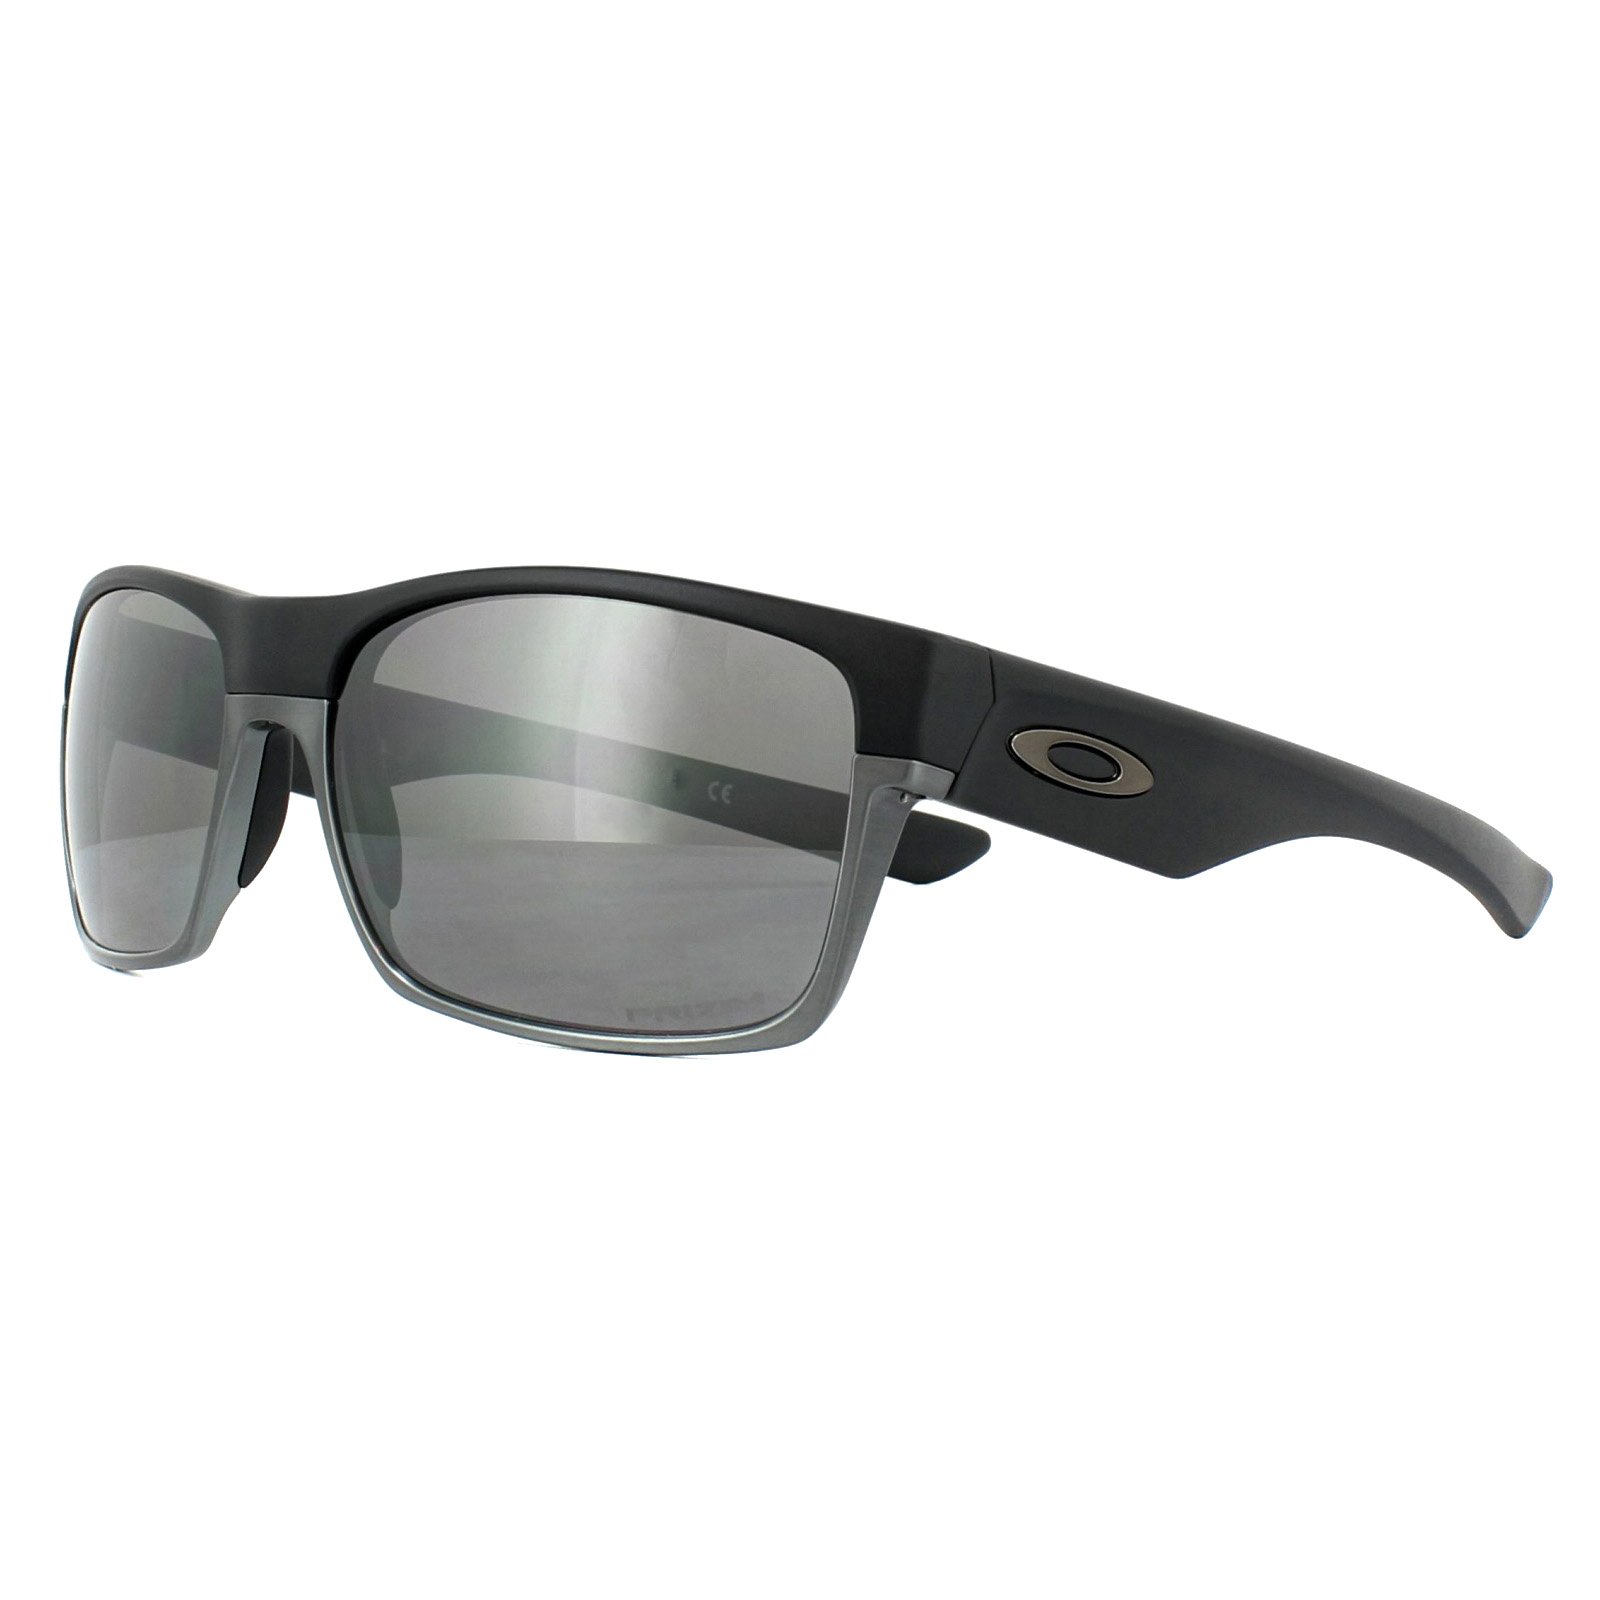 7a5f39d720 Sentinel Oakley Sunglasses TwoFace OO9189-38 Matt Black Prizm Daily  Polarized